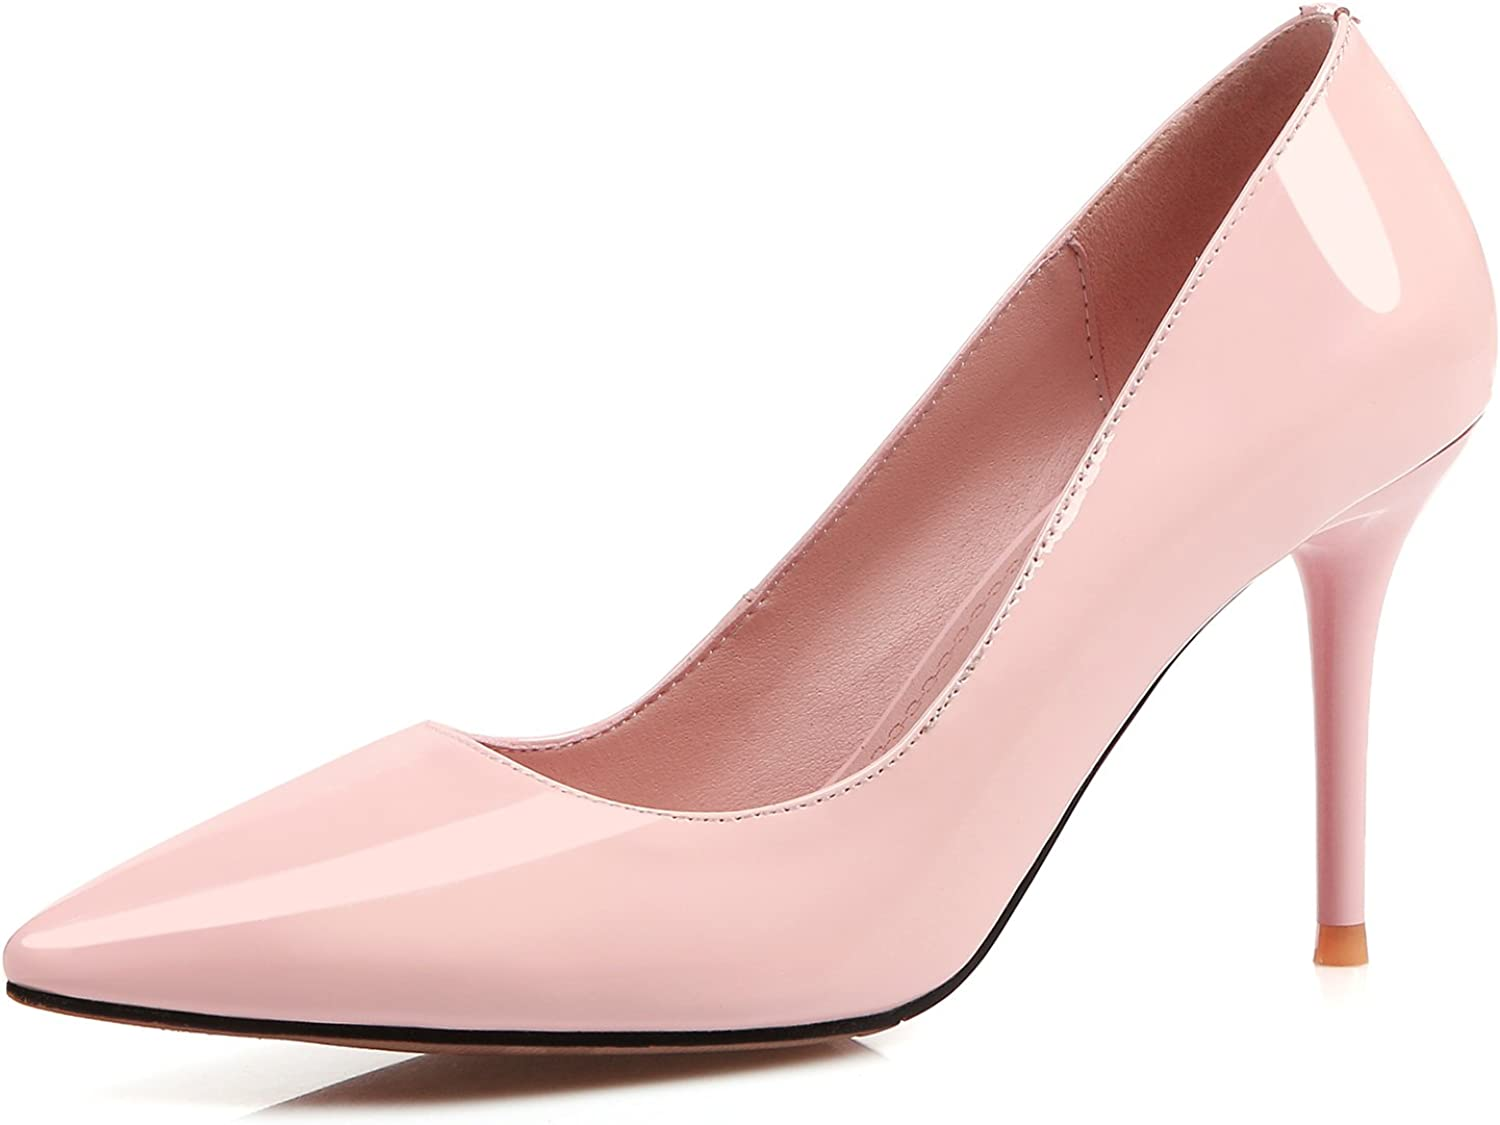 CHENSIR9 Women's Comfort Classic Slip Office Pumps High Heel Dress Pumps for Wedding Patry